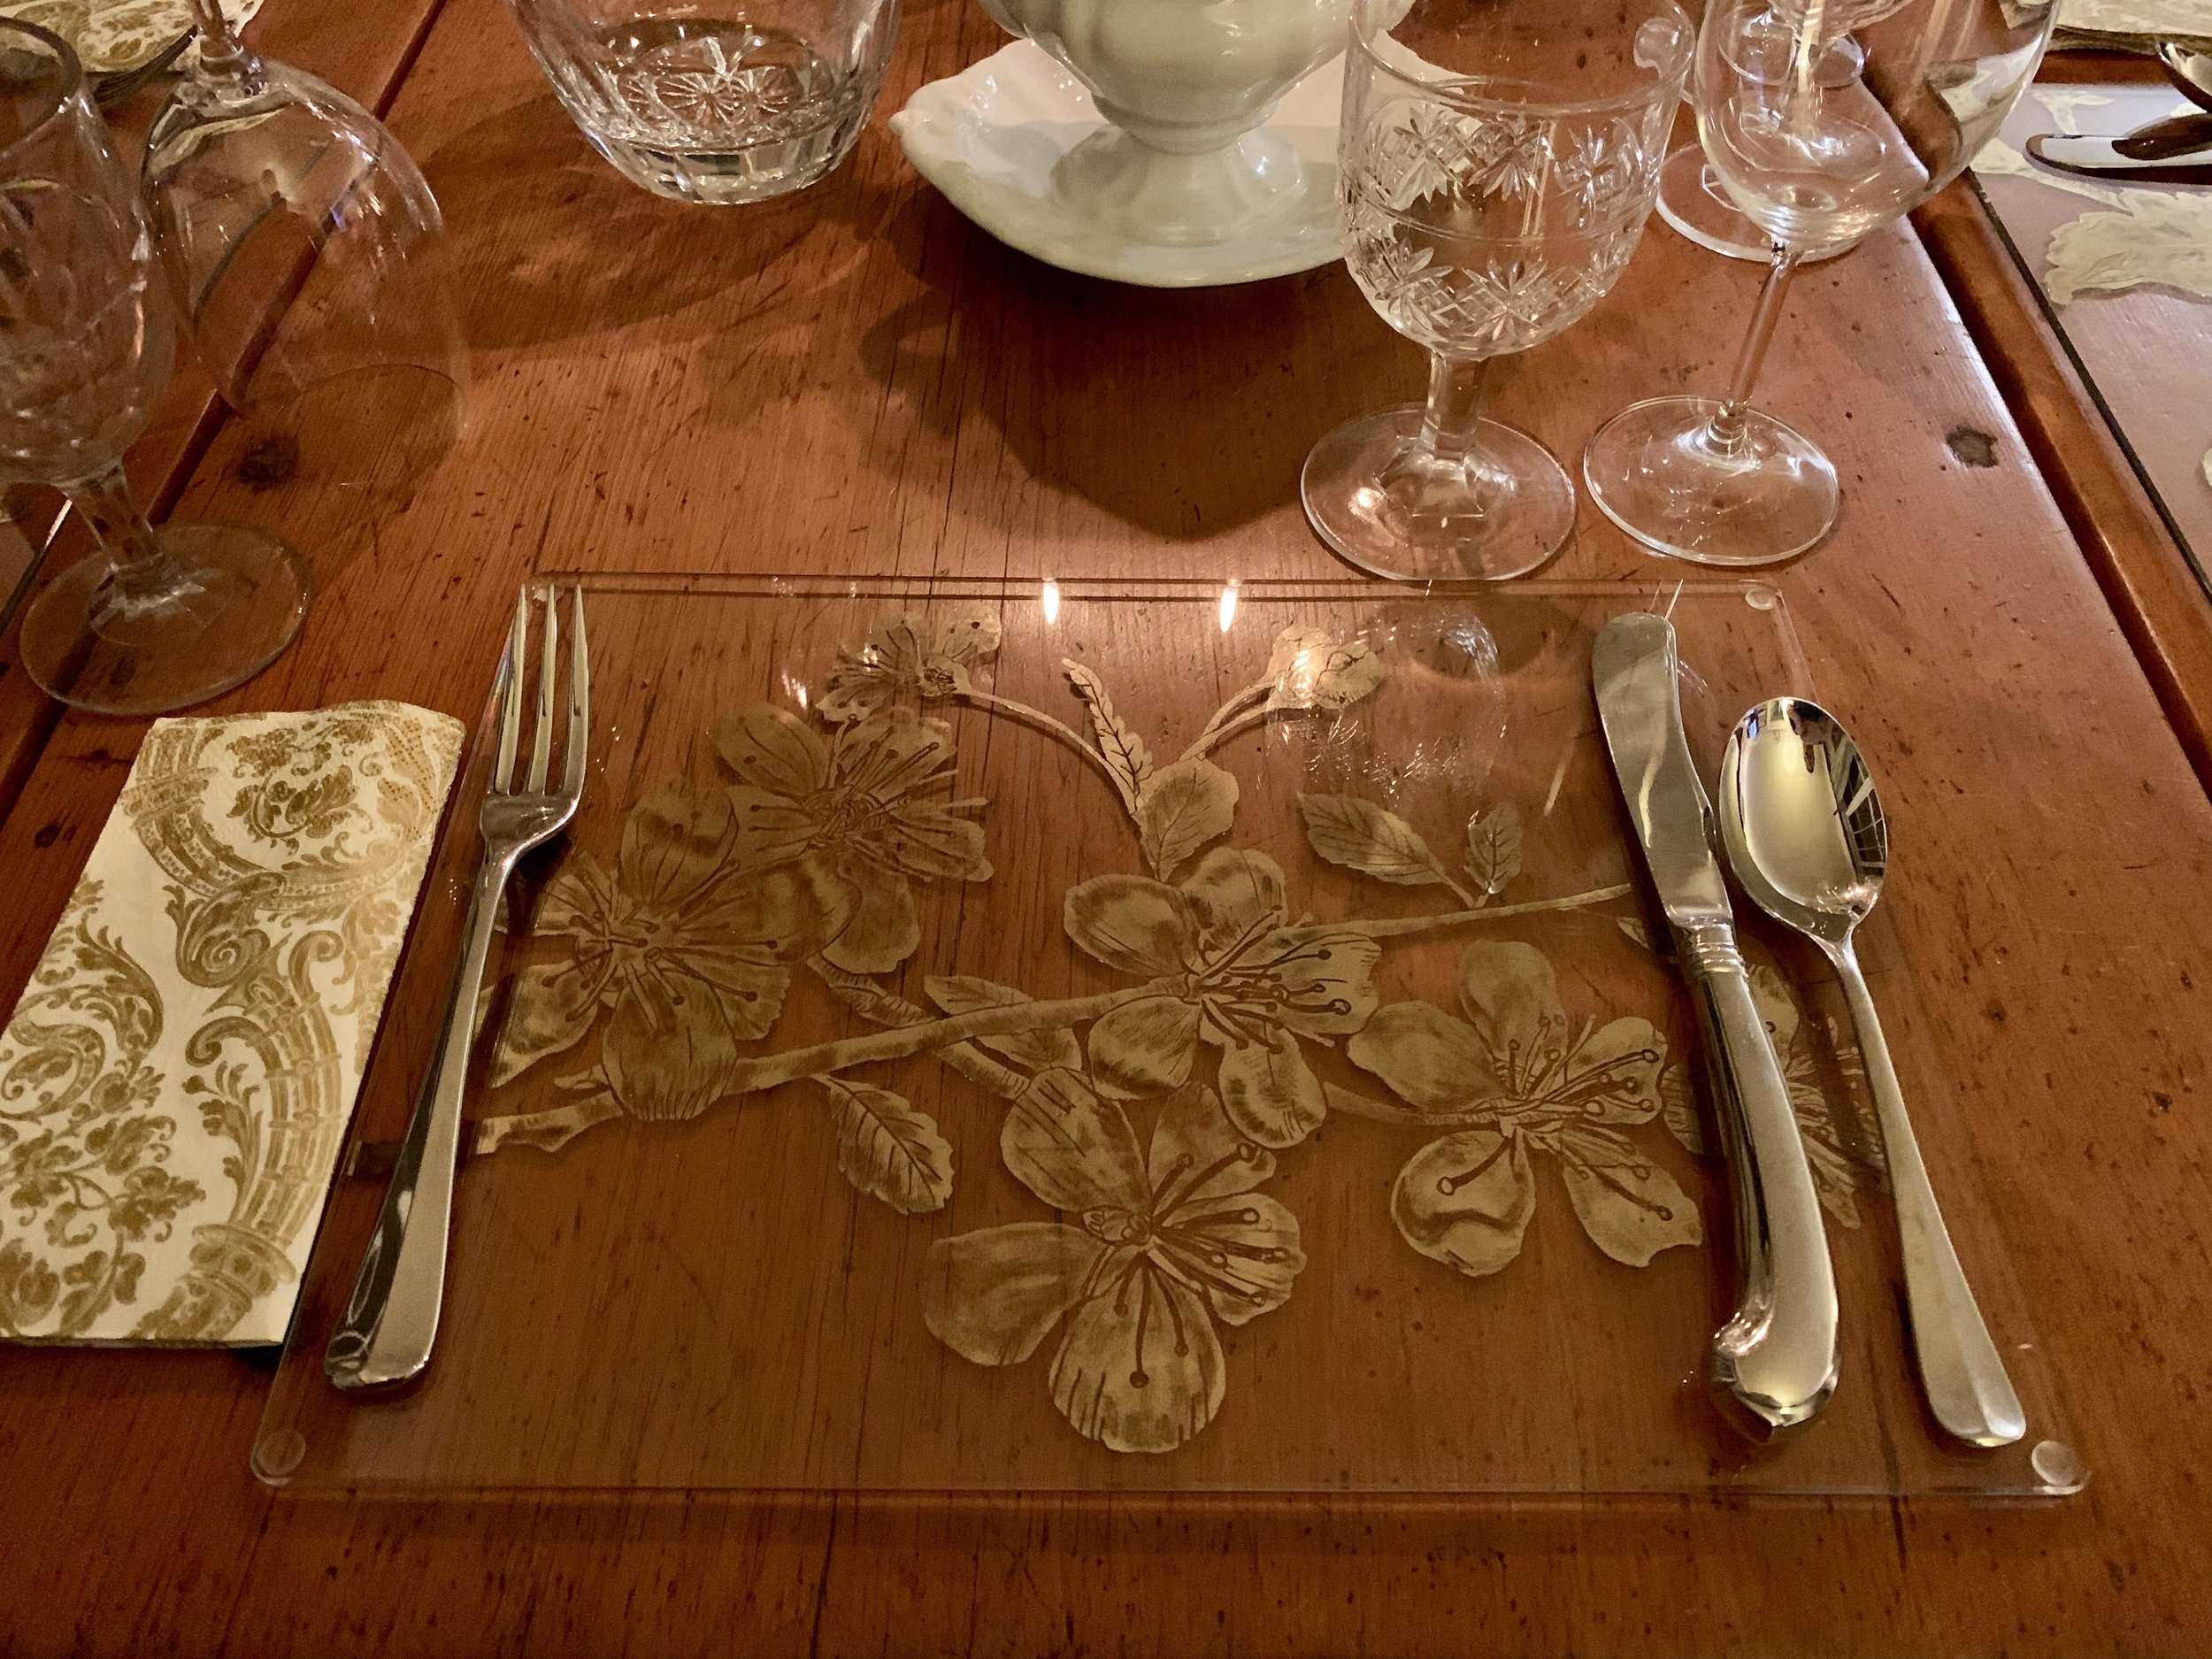 Custom verre eglomisé placemat on 4mm starfire glass using 22ct gold and hand shading.